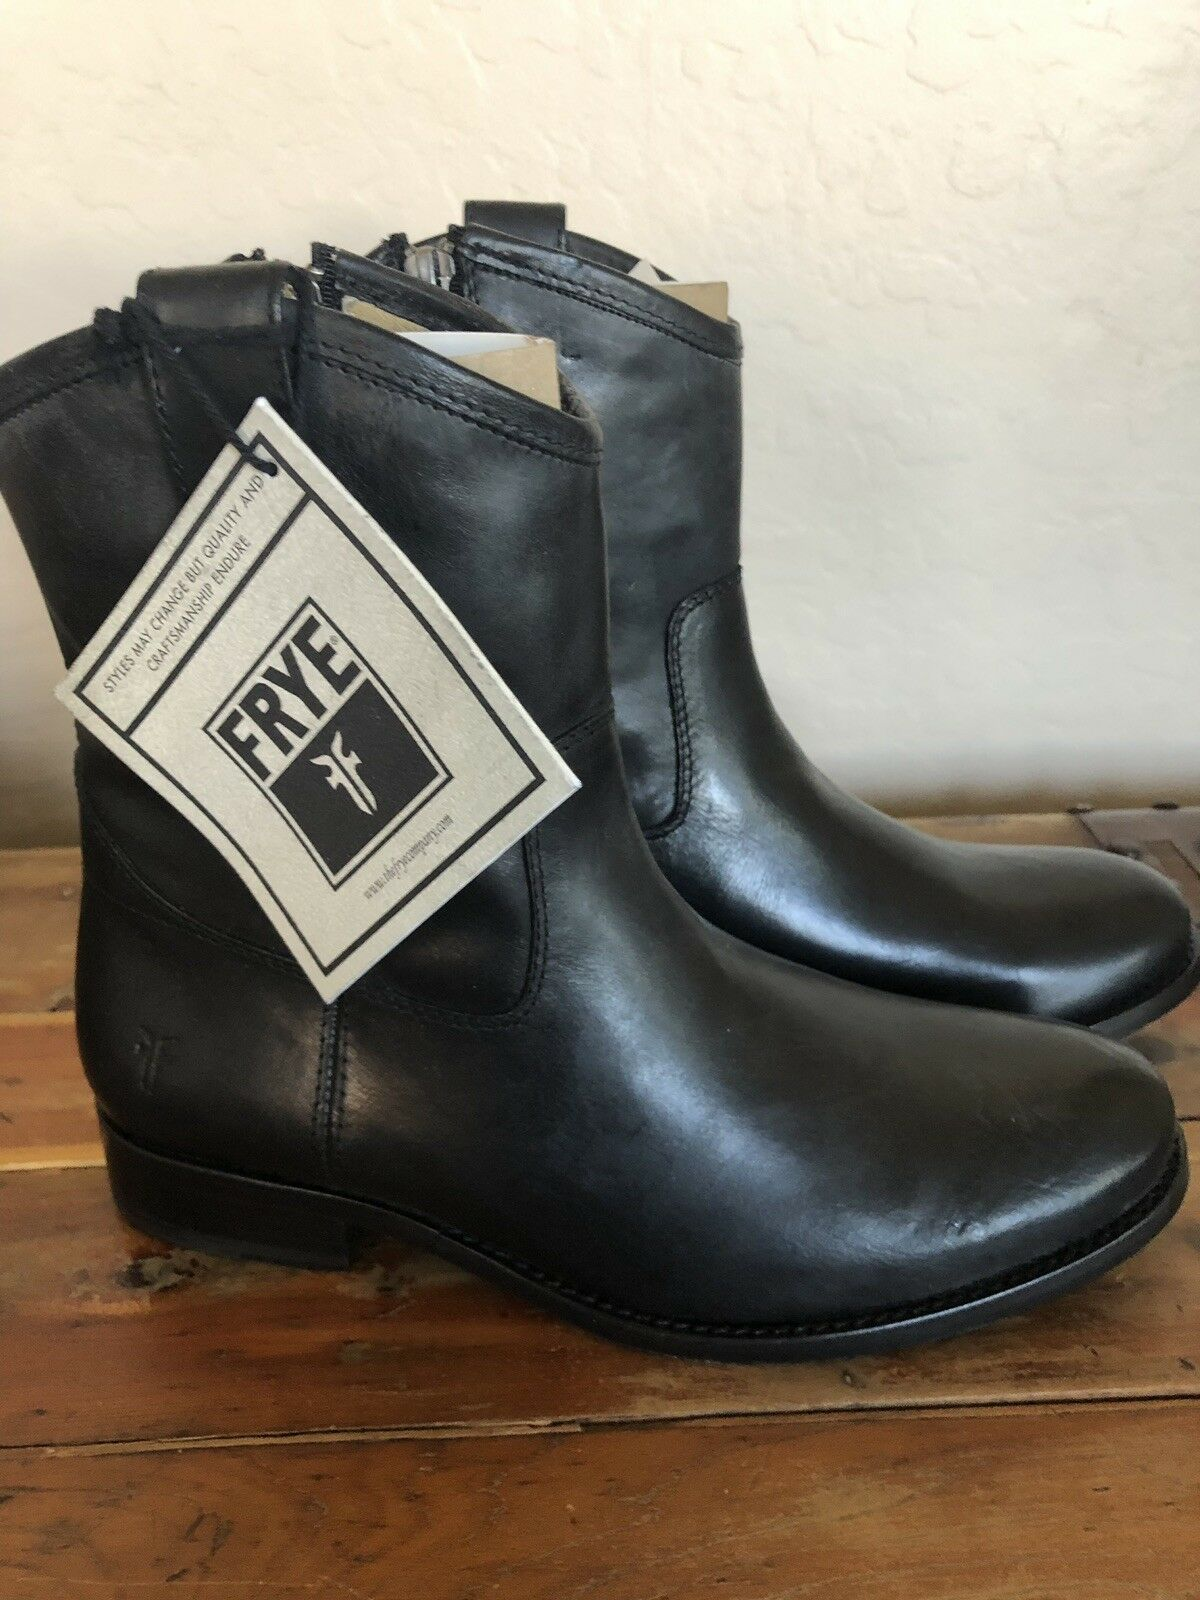 Fry Boots Black Leather Cowgirl Riding Riding Riding Winter Block Heel 7.5 8c2514